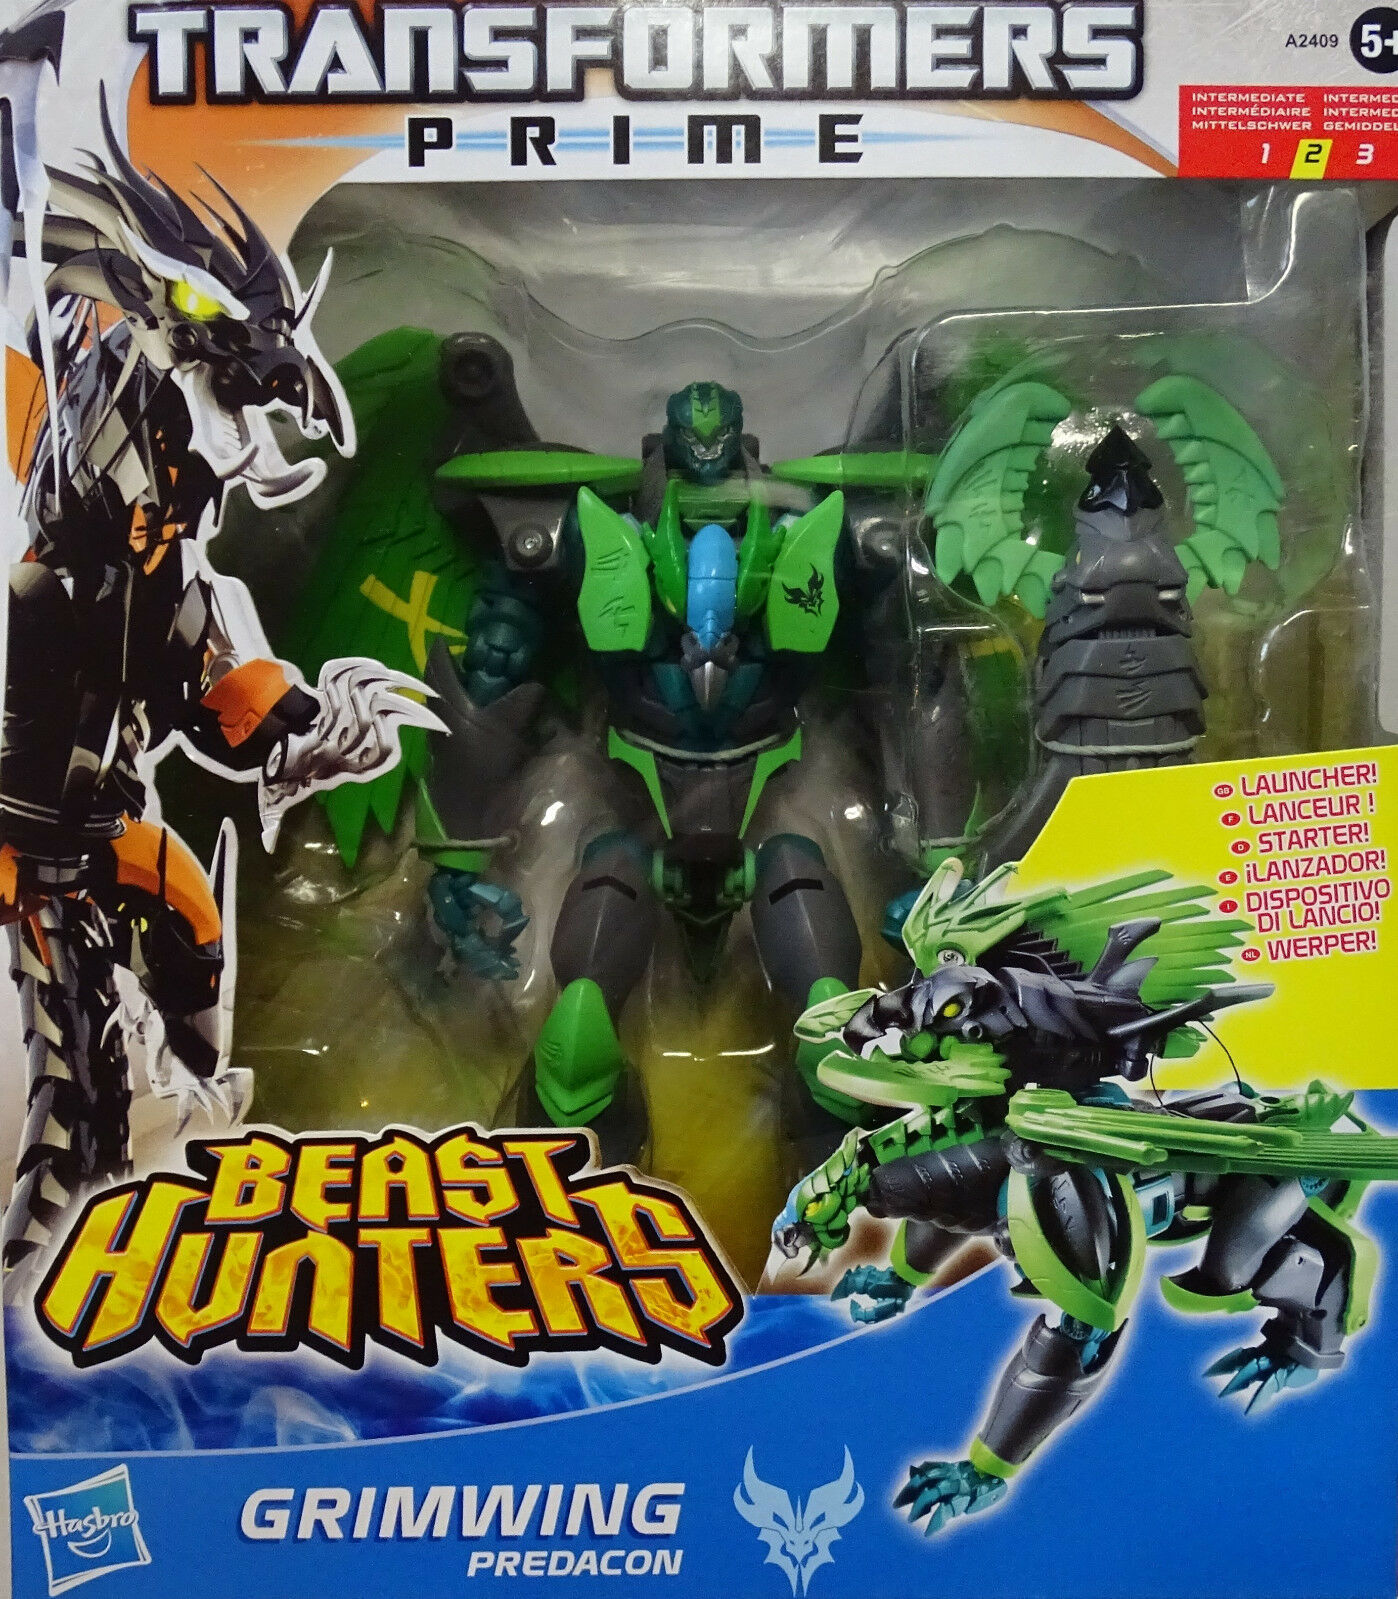 HASBRO ® a2409 TRANSFORMERS BEAST HUNTERS Prime Voyager Class Predacon grimwing